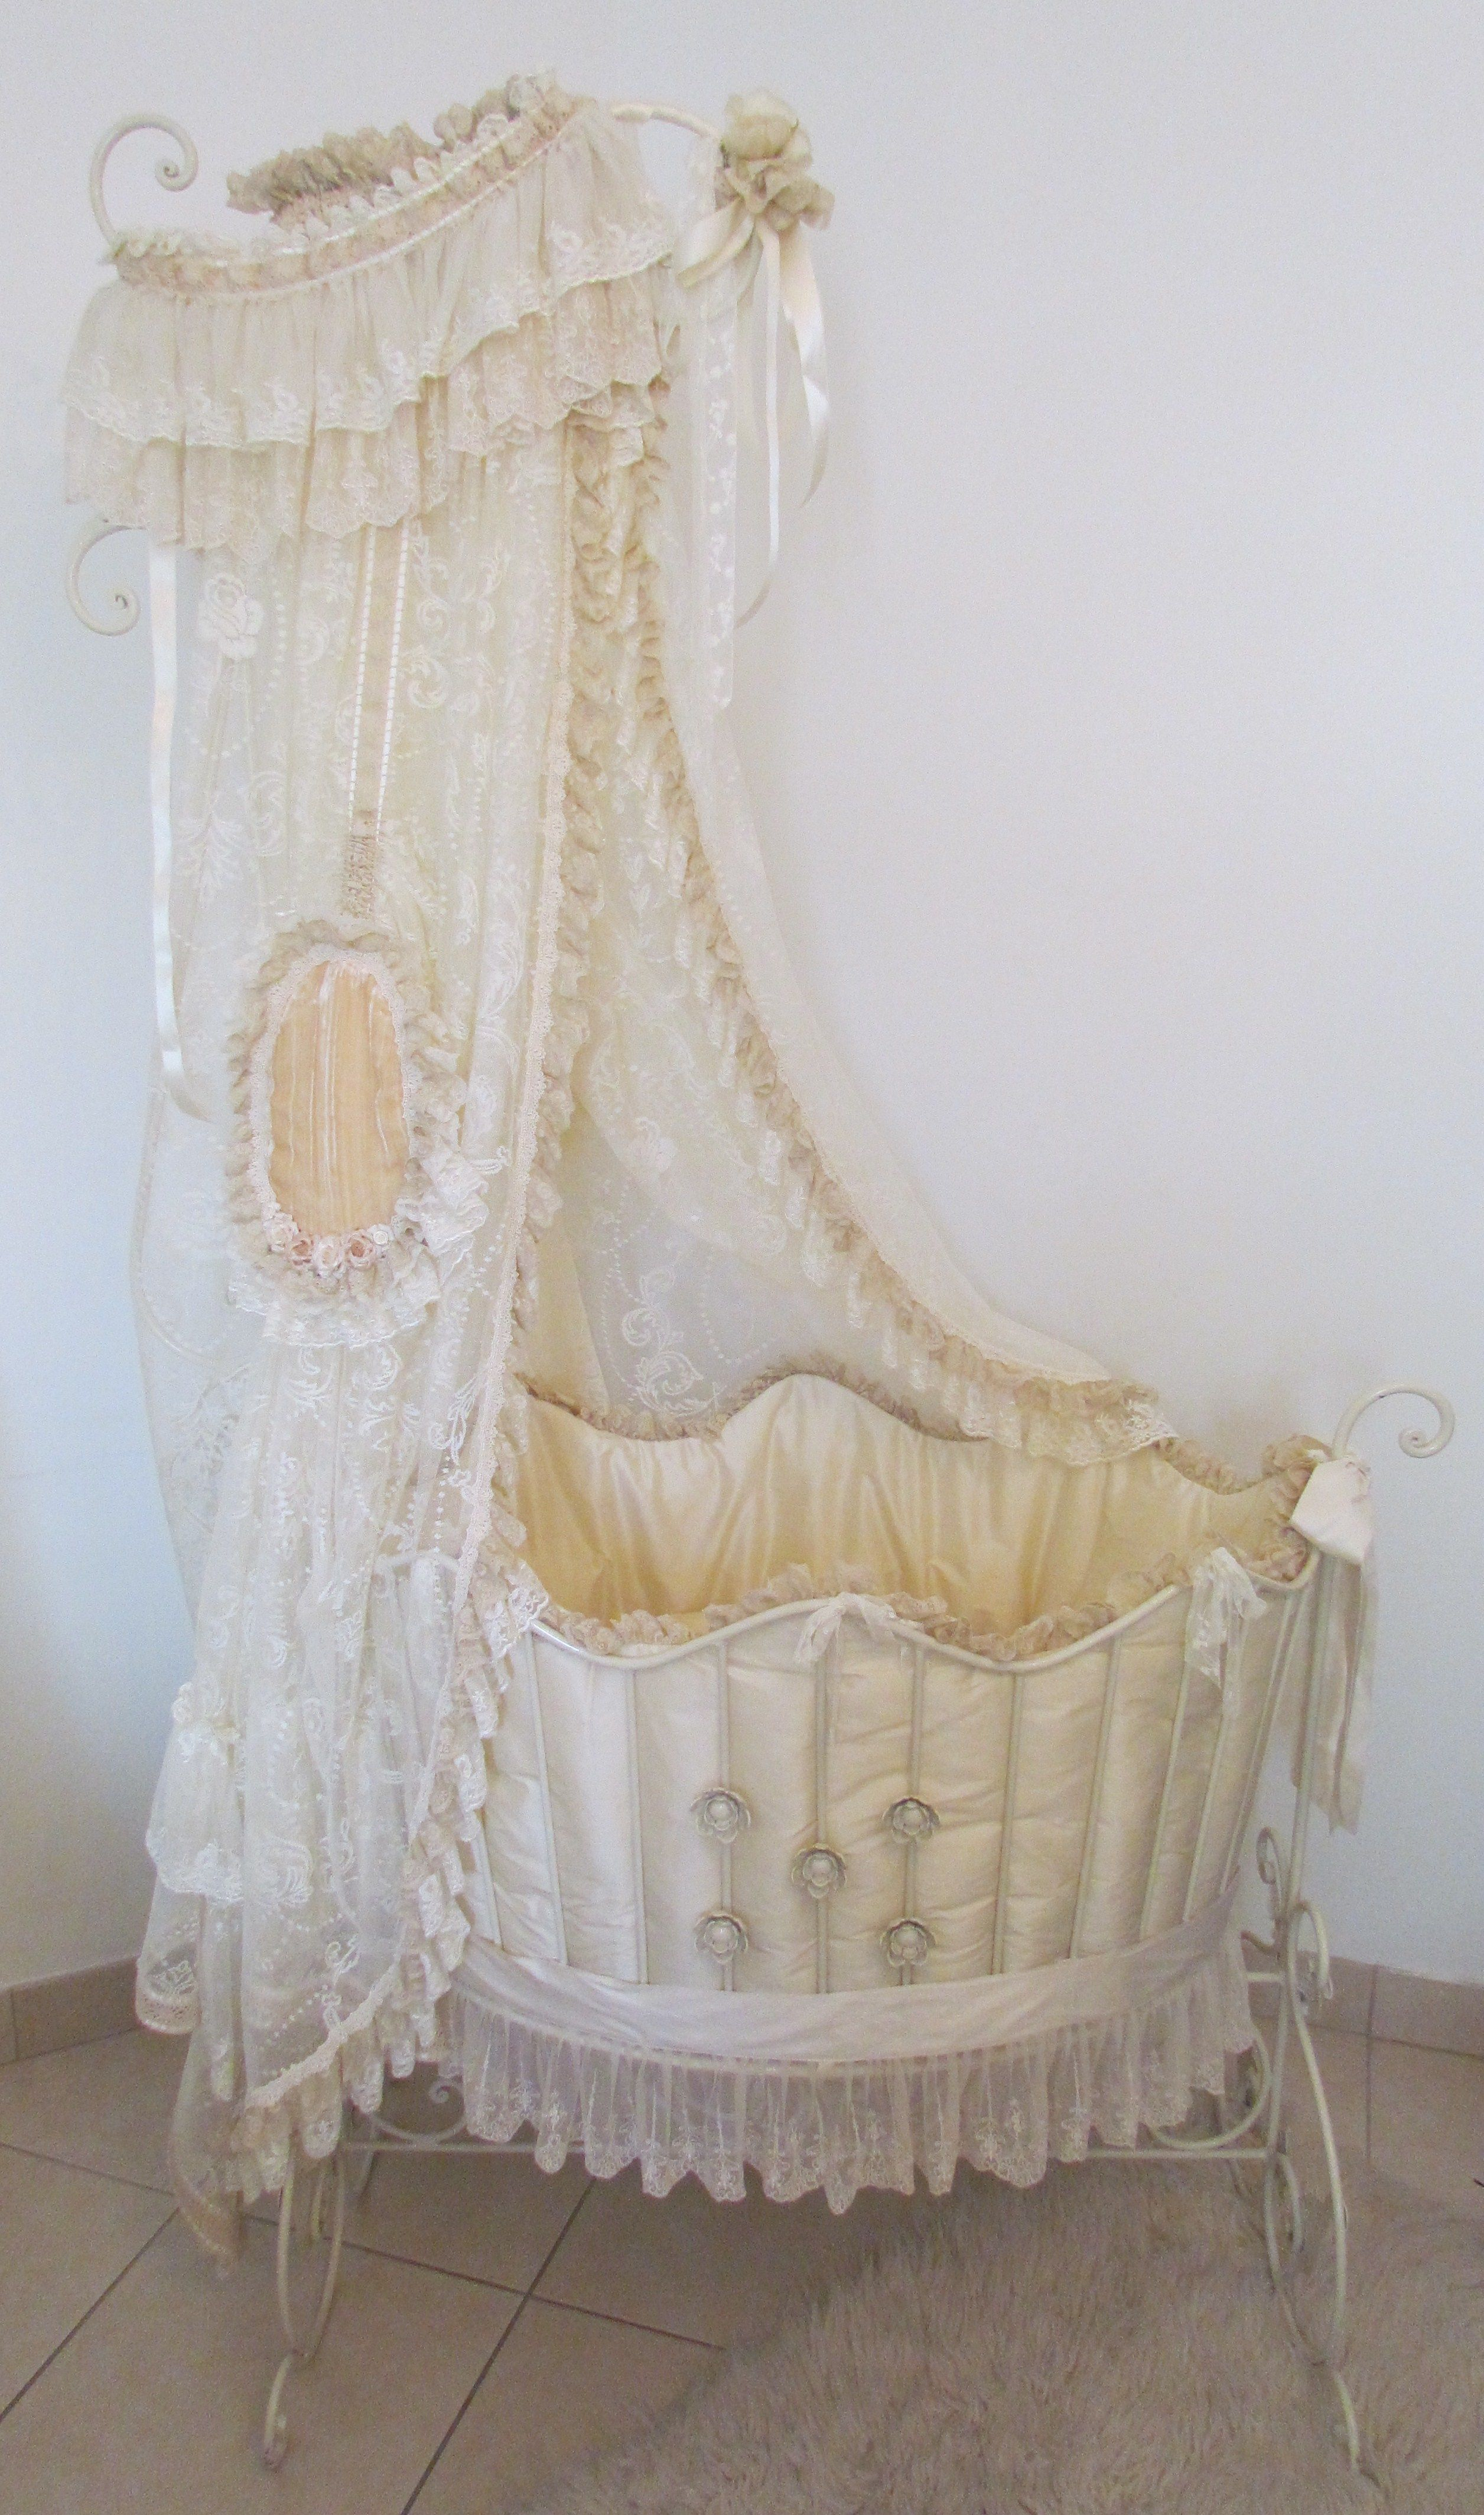 This is my favorite baby bed! | Moises | Pinterest | Moises, Bebe y ...